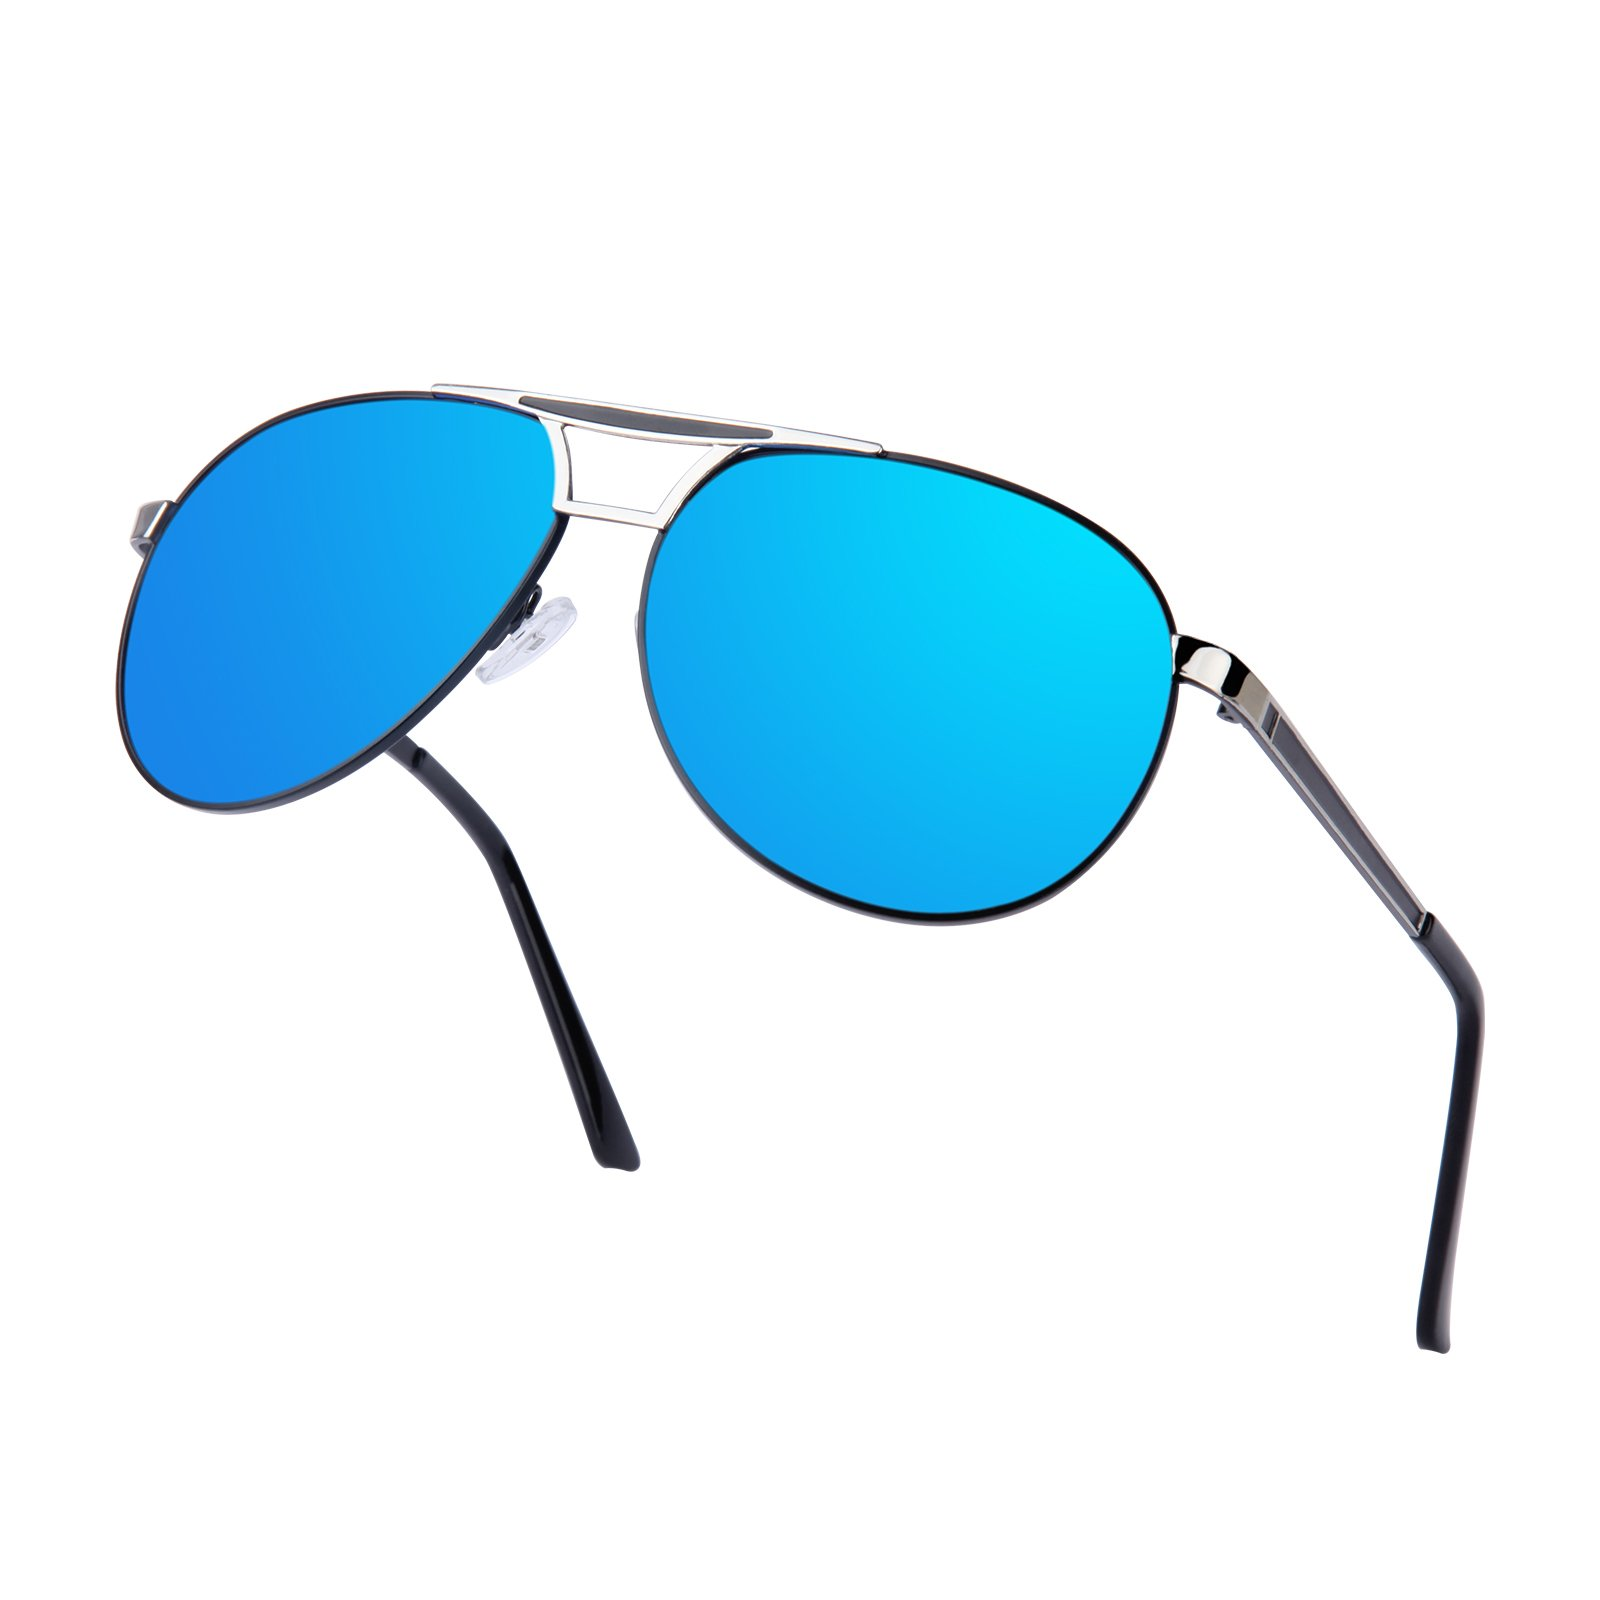 Men Aviator Sunglasses Women Vintage Polarized Pilot Sun Glasses UV 400 Protection by Kennifer (Blue)